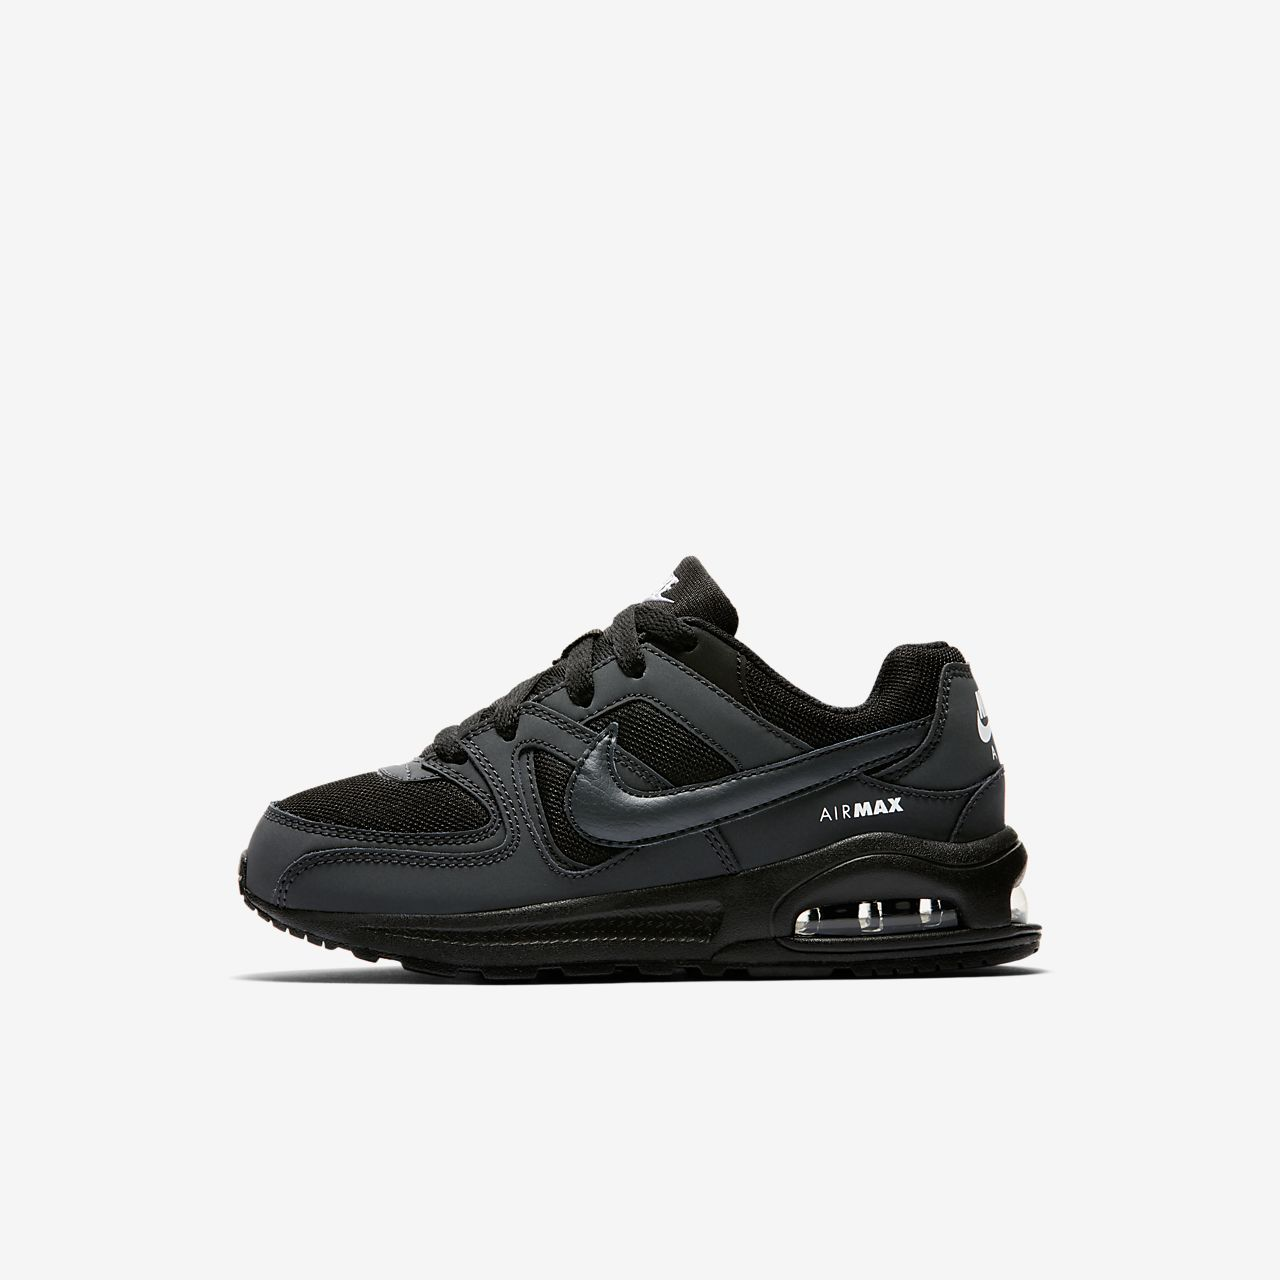 innovative design 4077c d3dbd ... czech zapatos blancos nike air max command infantiles d1769 9d746